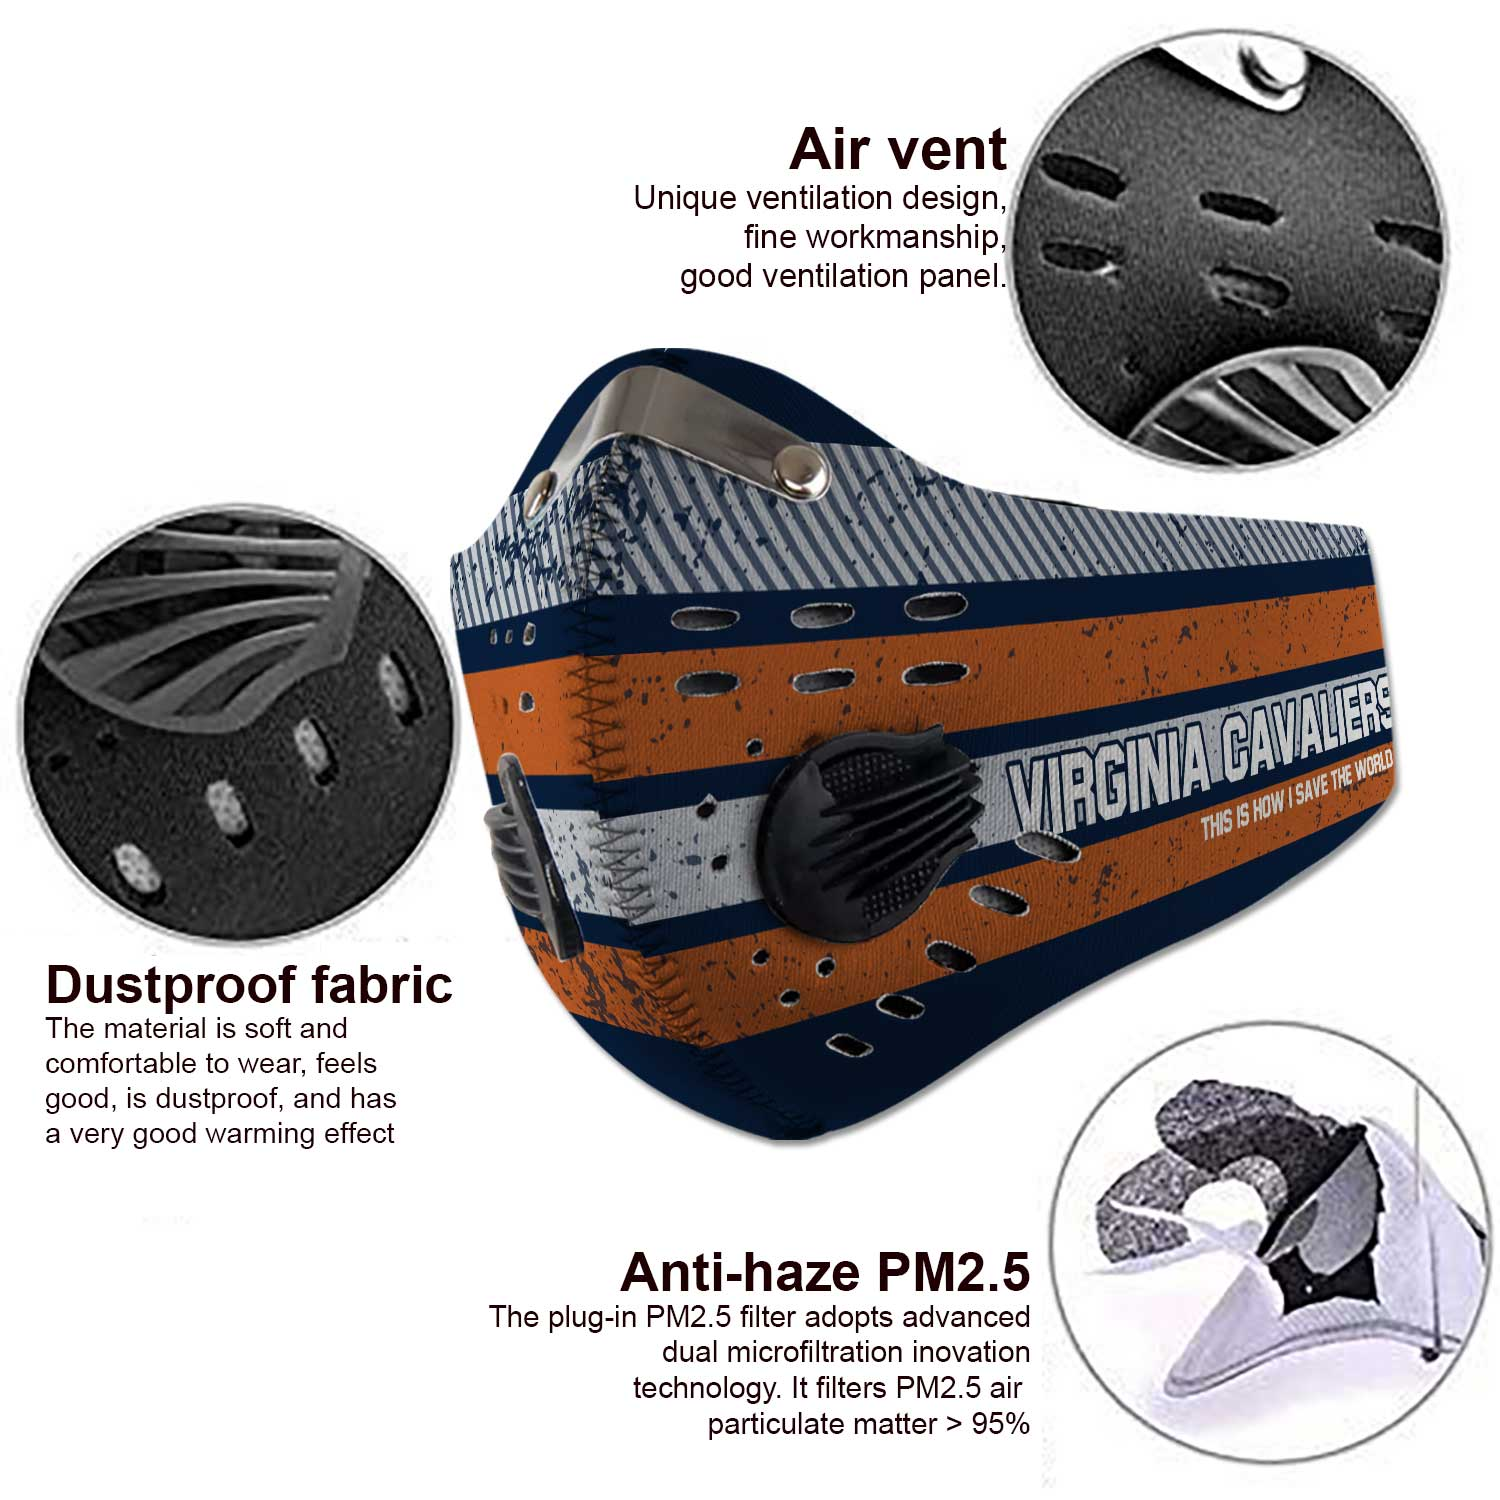 Virginia cavaliers this is how i save the world carbon filter face mask 4